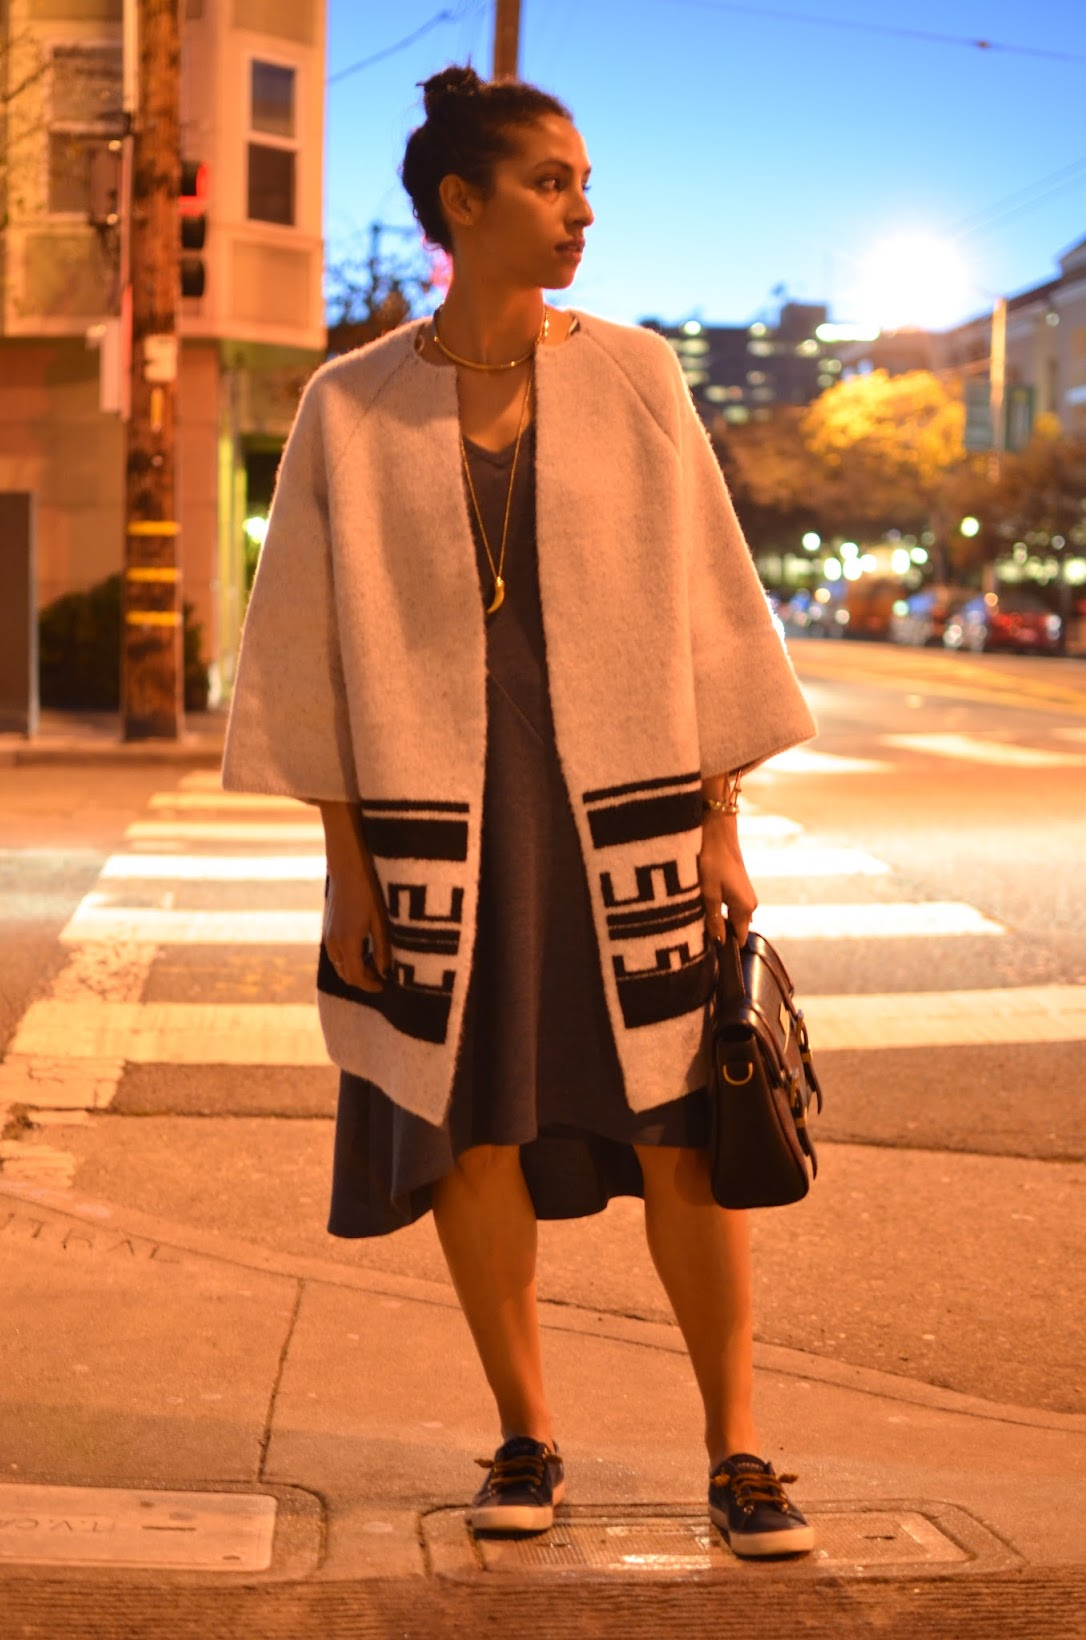 Jigsaw asymmetrical dress, cocoon coat, Sperry's sneakers, tribal coat, sneaker style